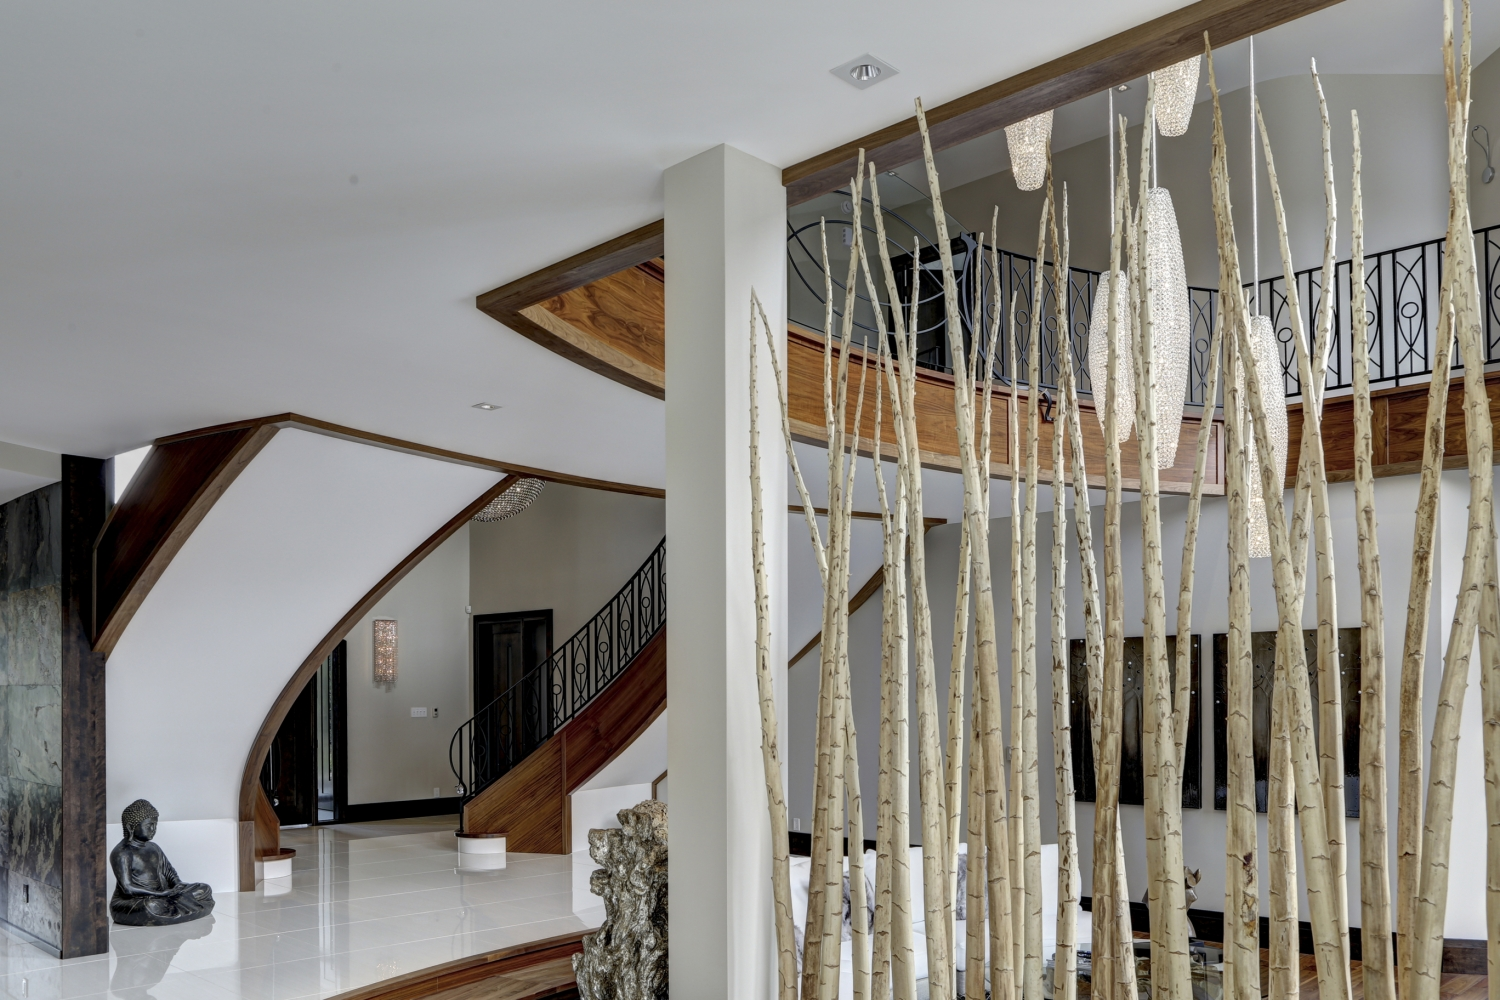 Pesci contemporain rampes et garde corps battig design - Main courante escalier originale ...